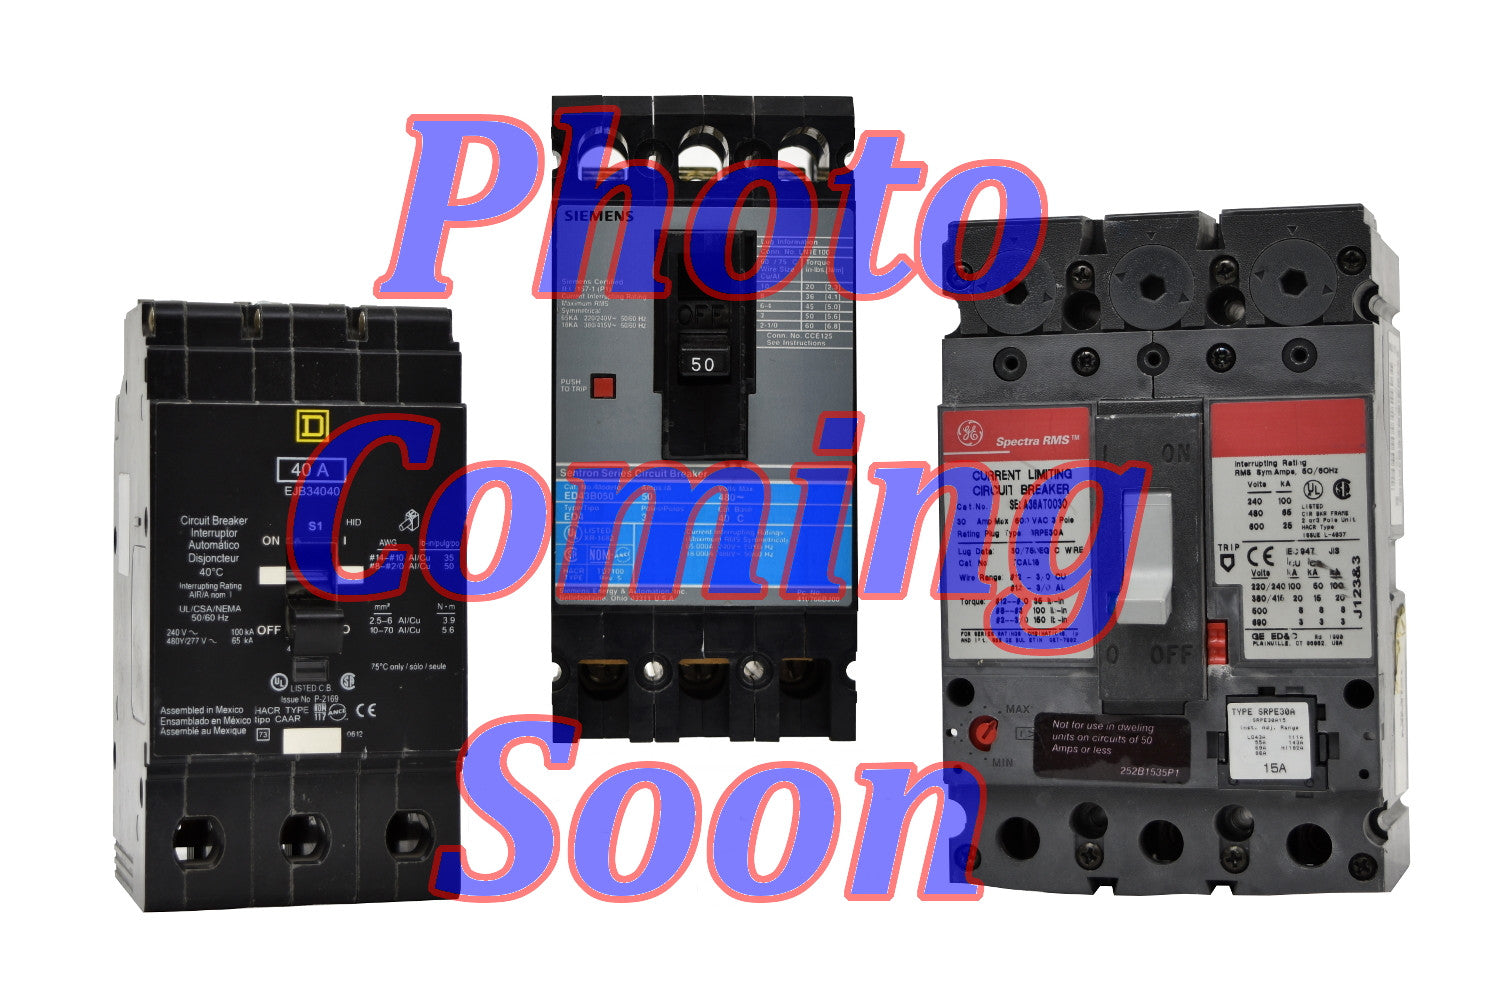 General Electric FCV326TE040R2 Circuit Breakers